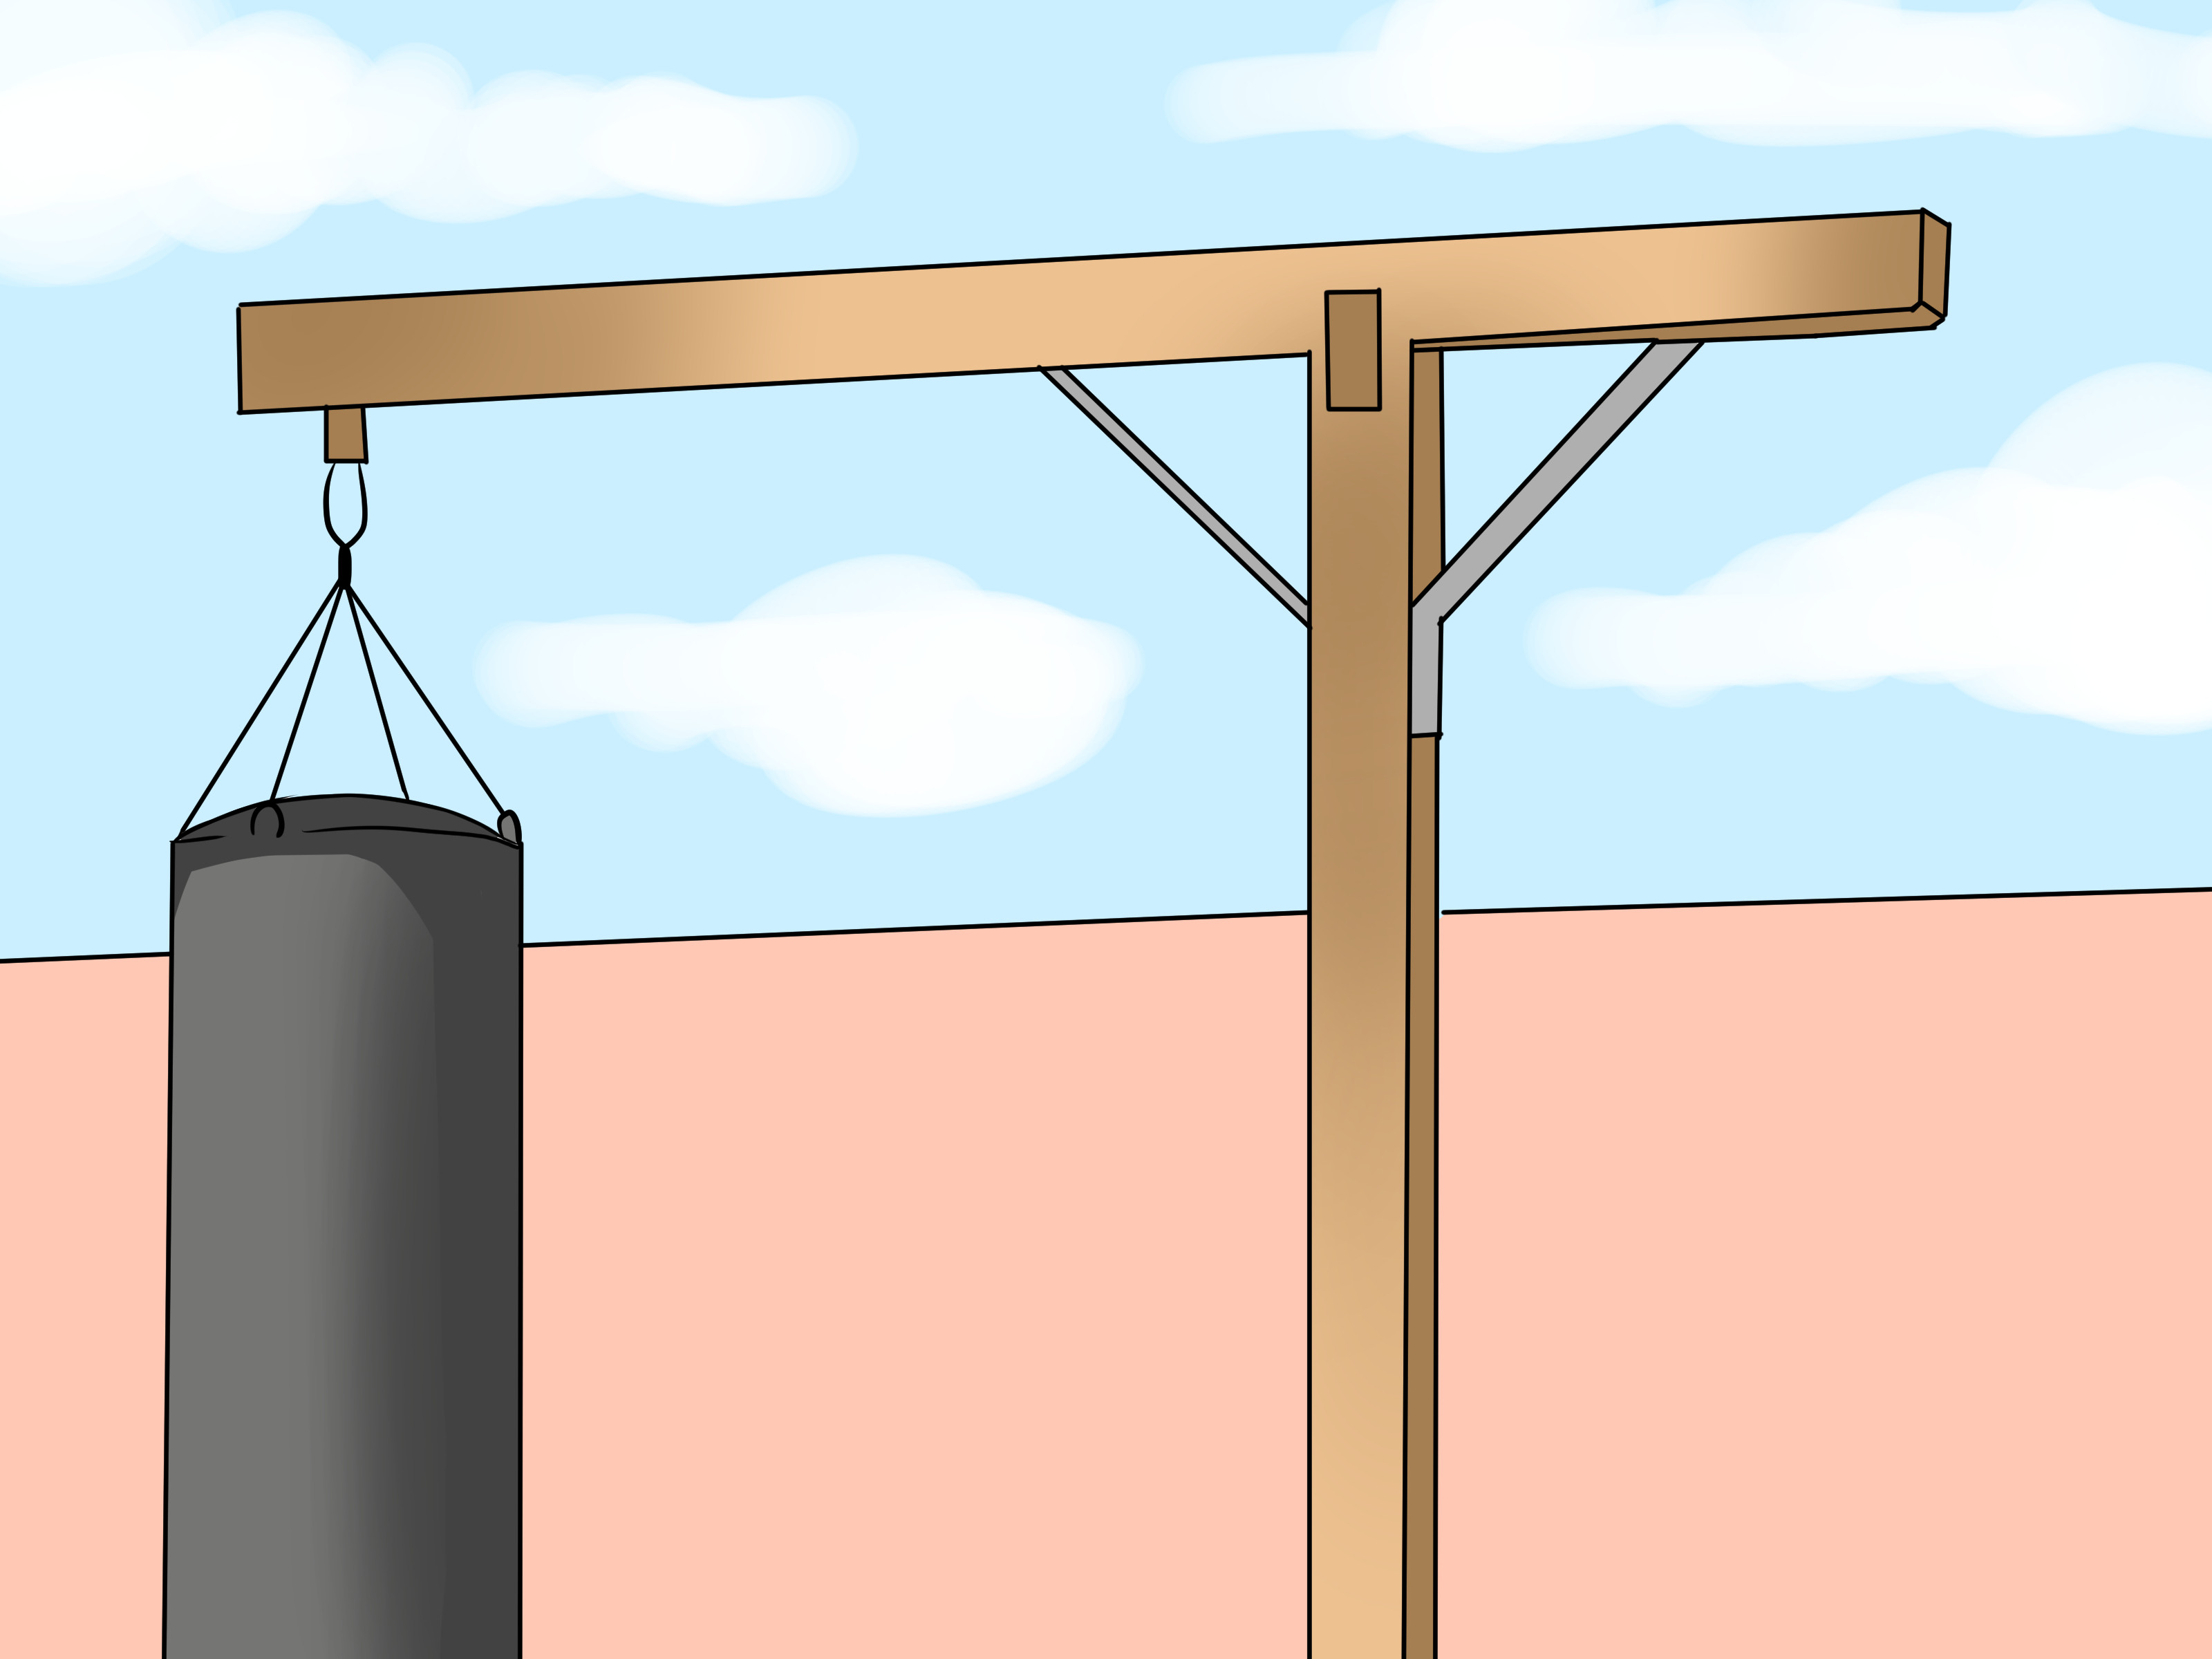 Best ideas about DIY Punch Bag Stand . Save or Pin How to Make a Punching Bag Stand 9 Steps with Now.